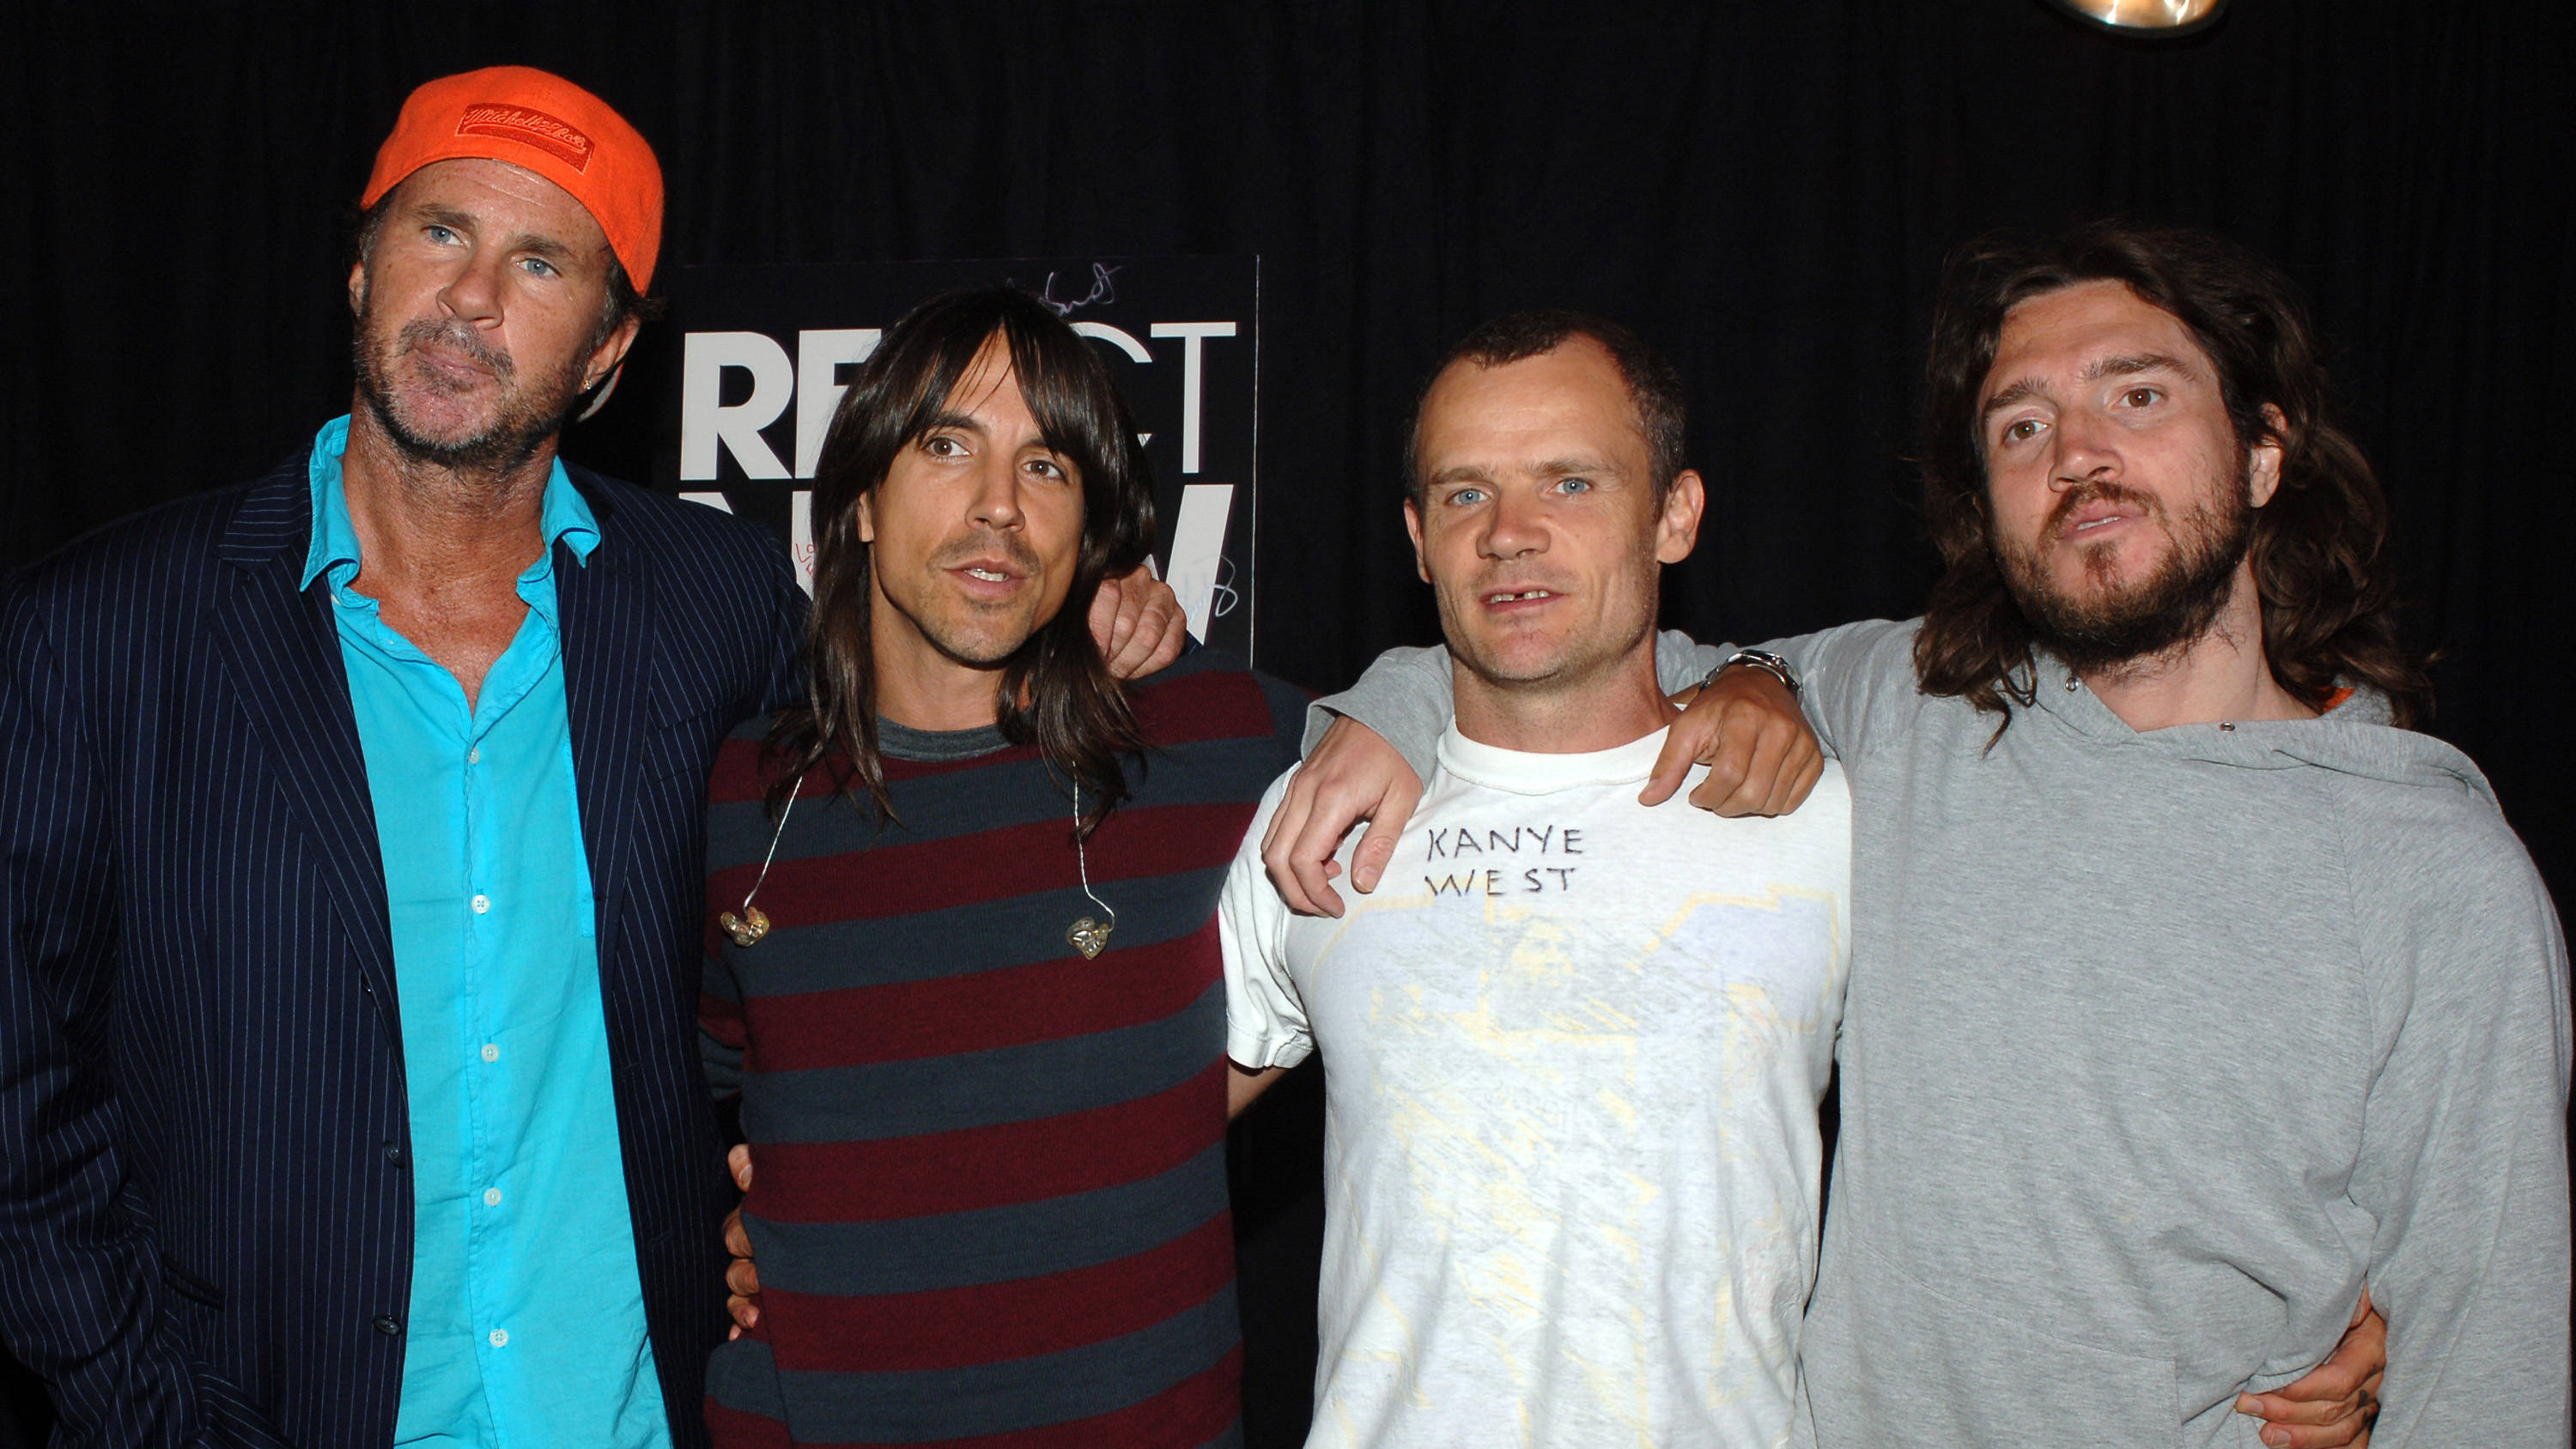 Red Hot Chili Peppers announce return of John Frusciante as Josh Klinghoffer leaves band